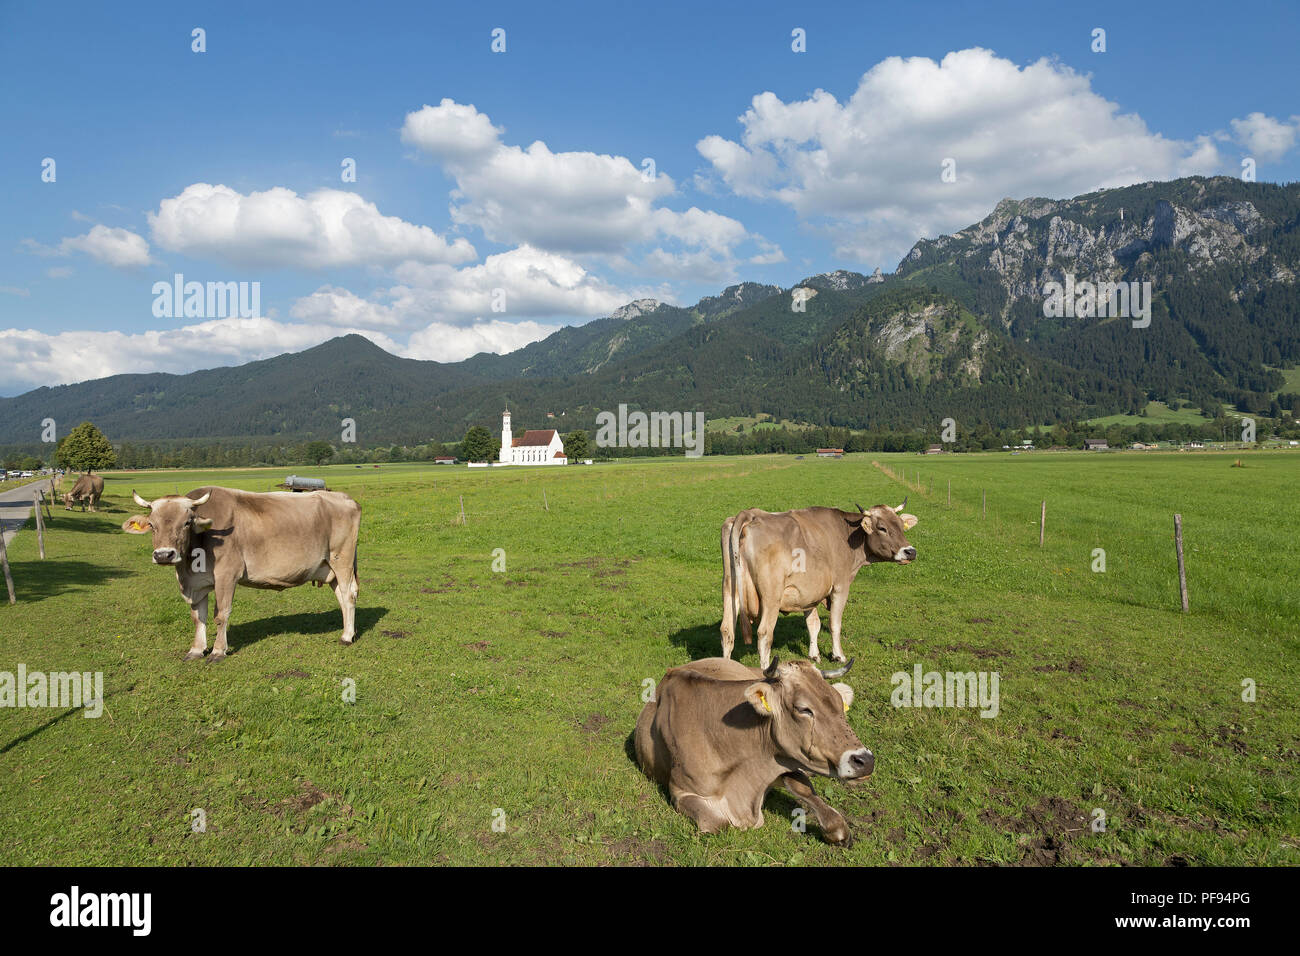 cows in front of St. Coloman Church near Schwangau, Allgaeu, Bavaria, Germany - Stock Image